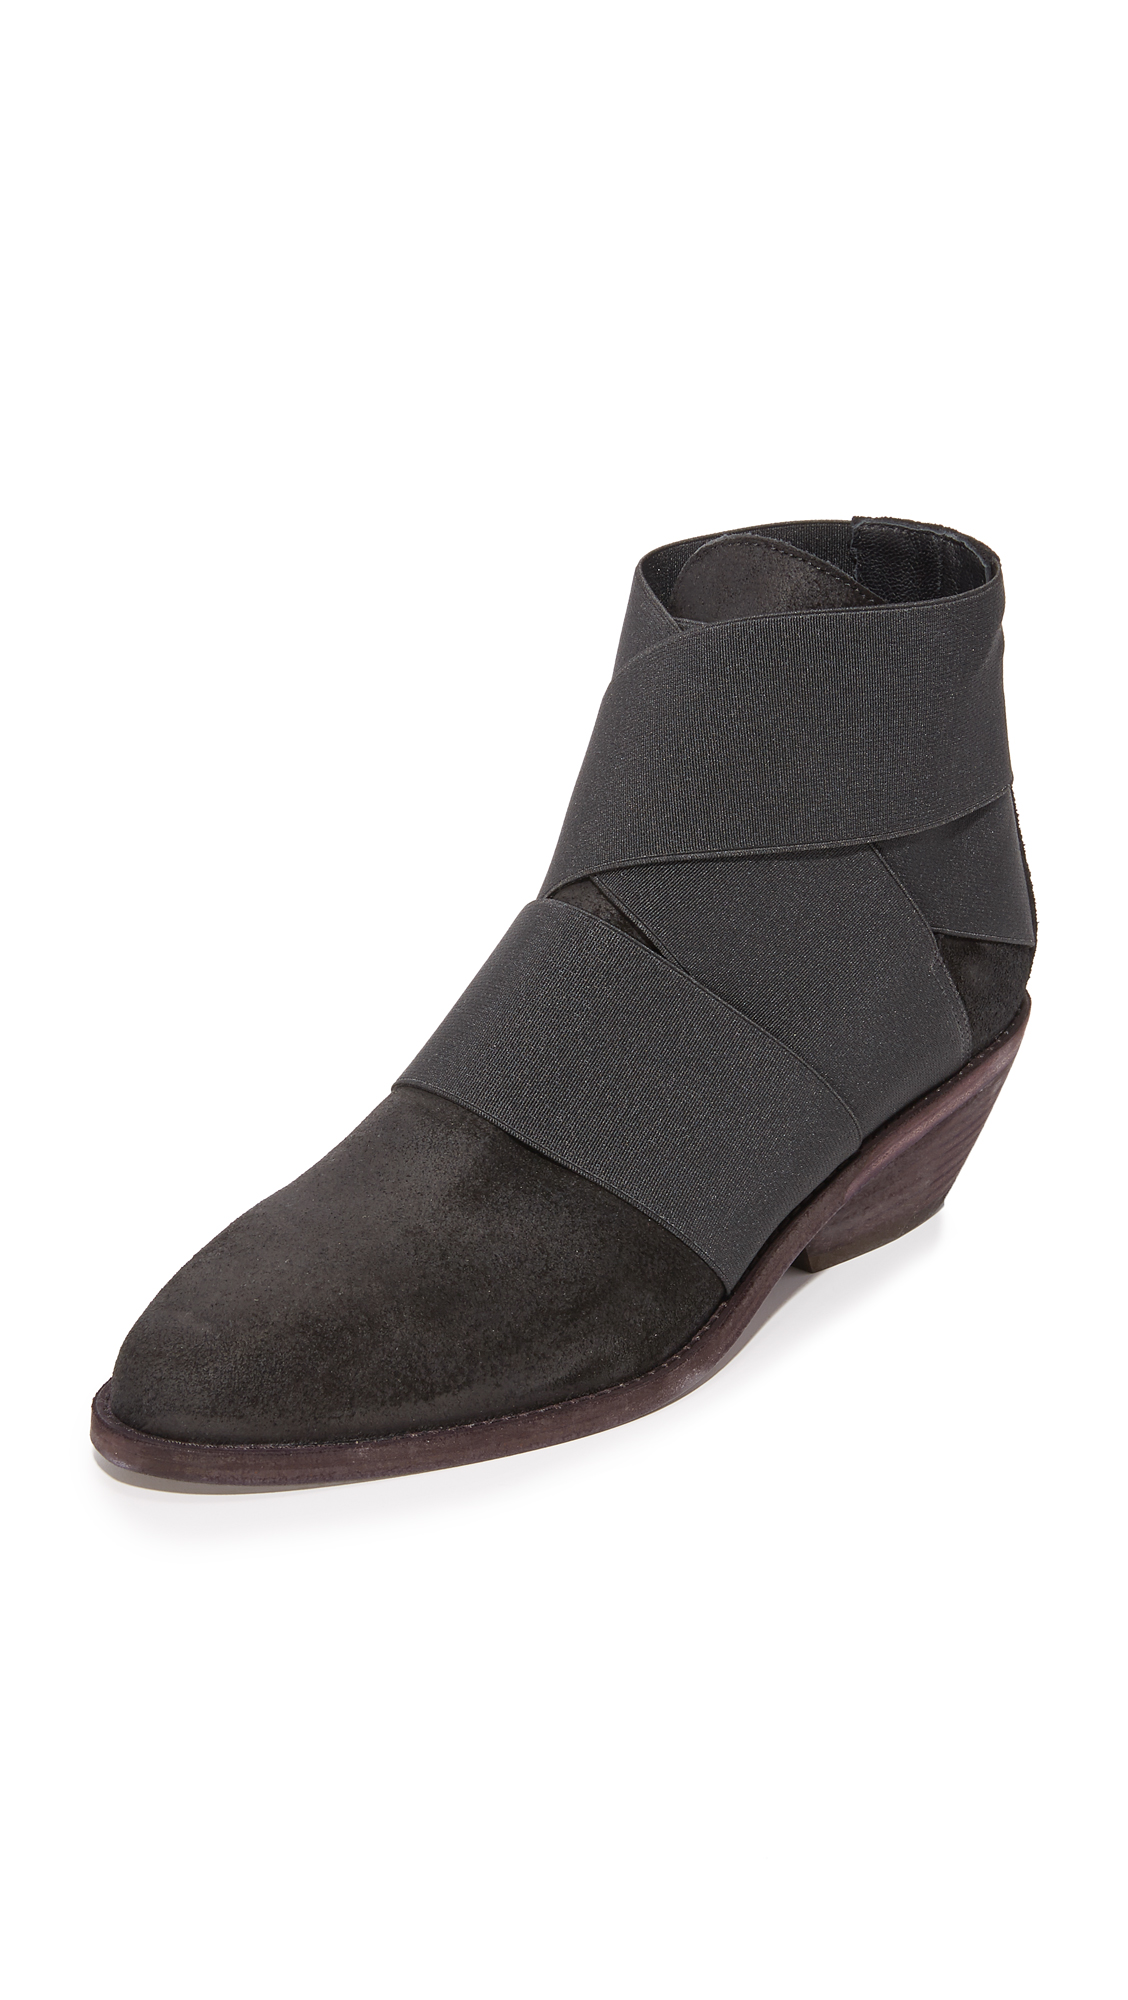 Ld Tuttle The Smoke Booties - Black